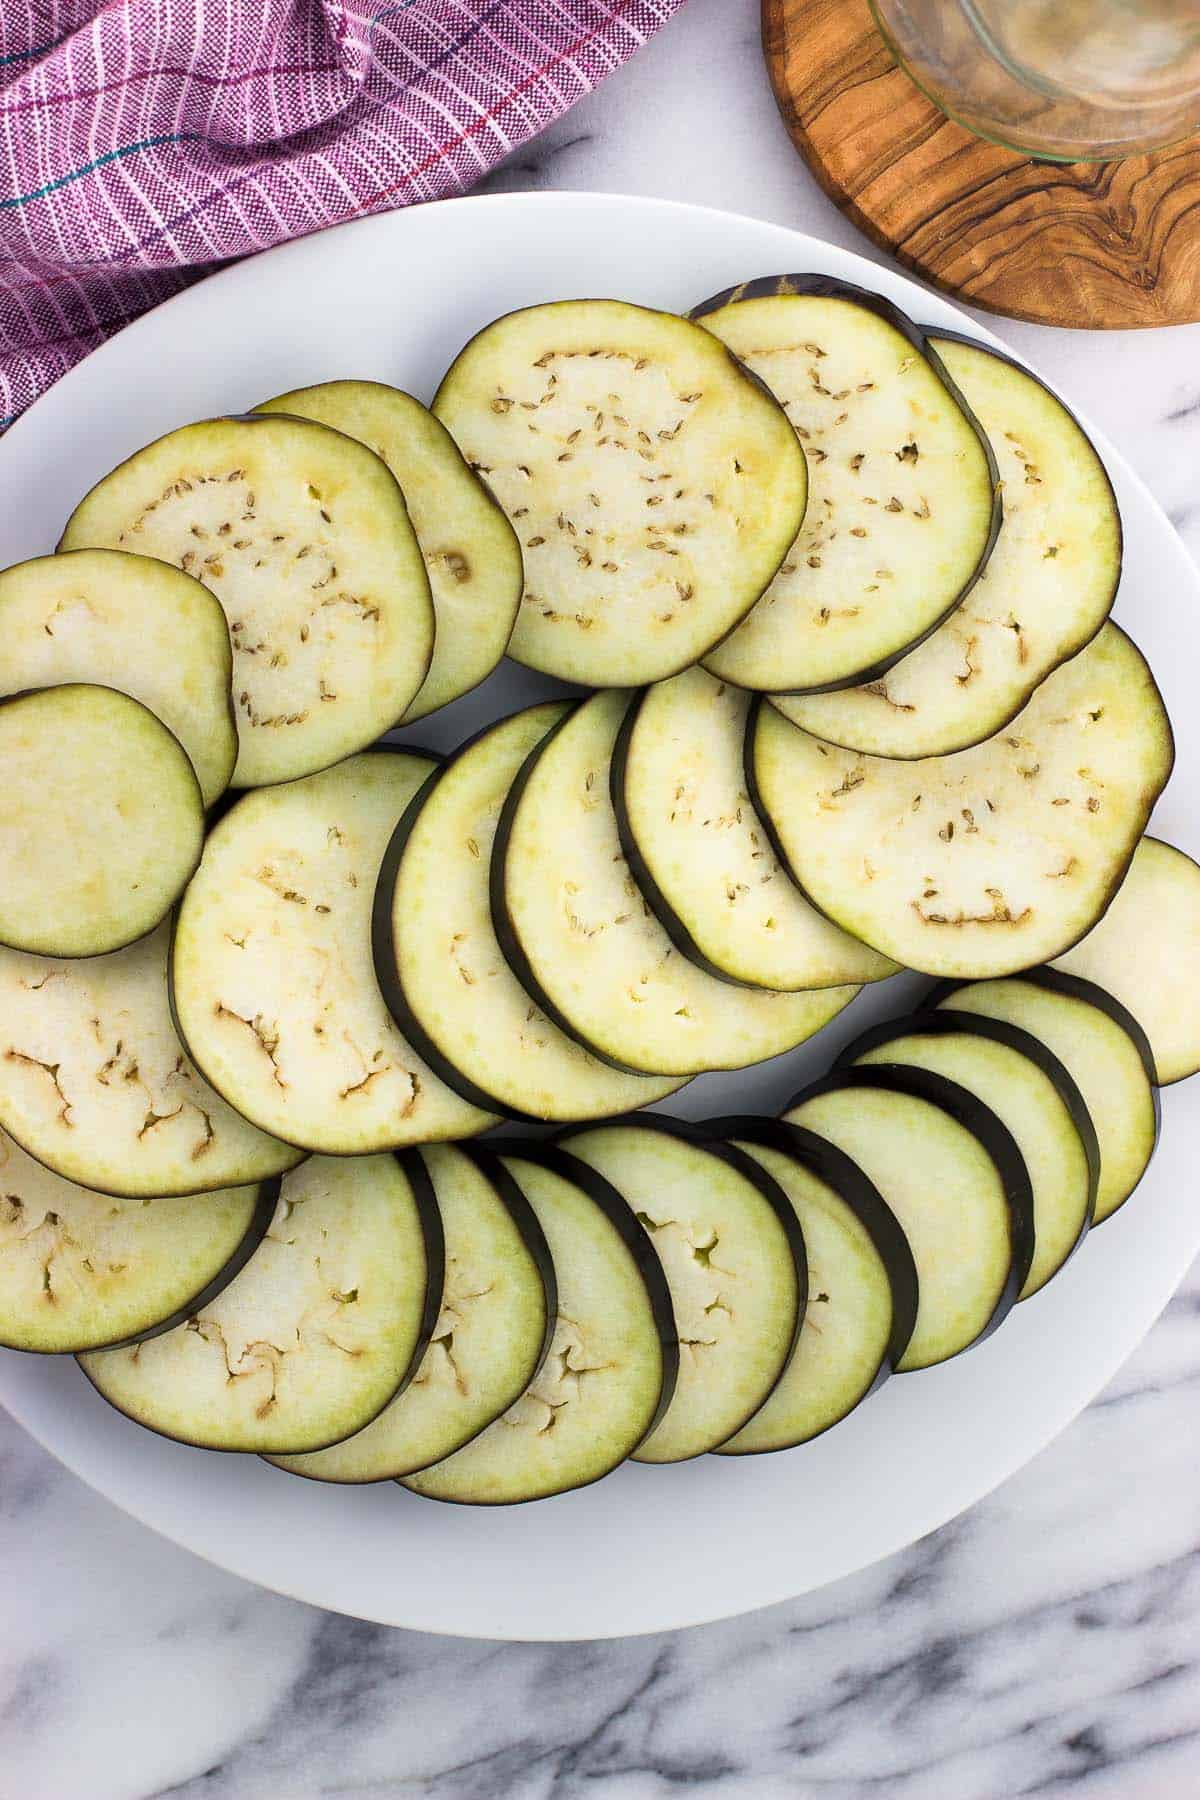 Eggplant slices laid out on a plate.